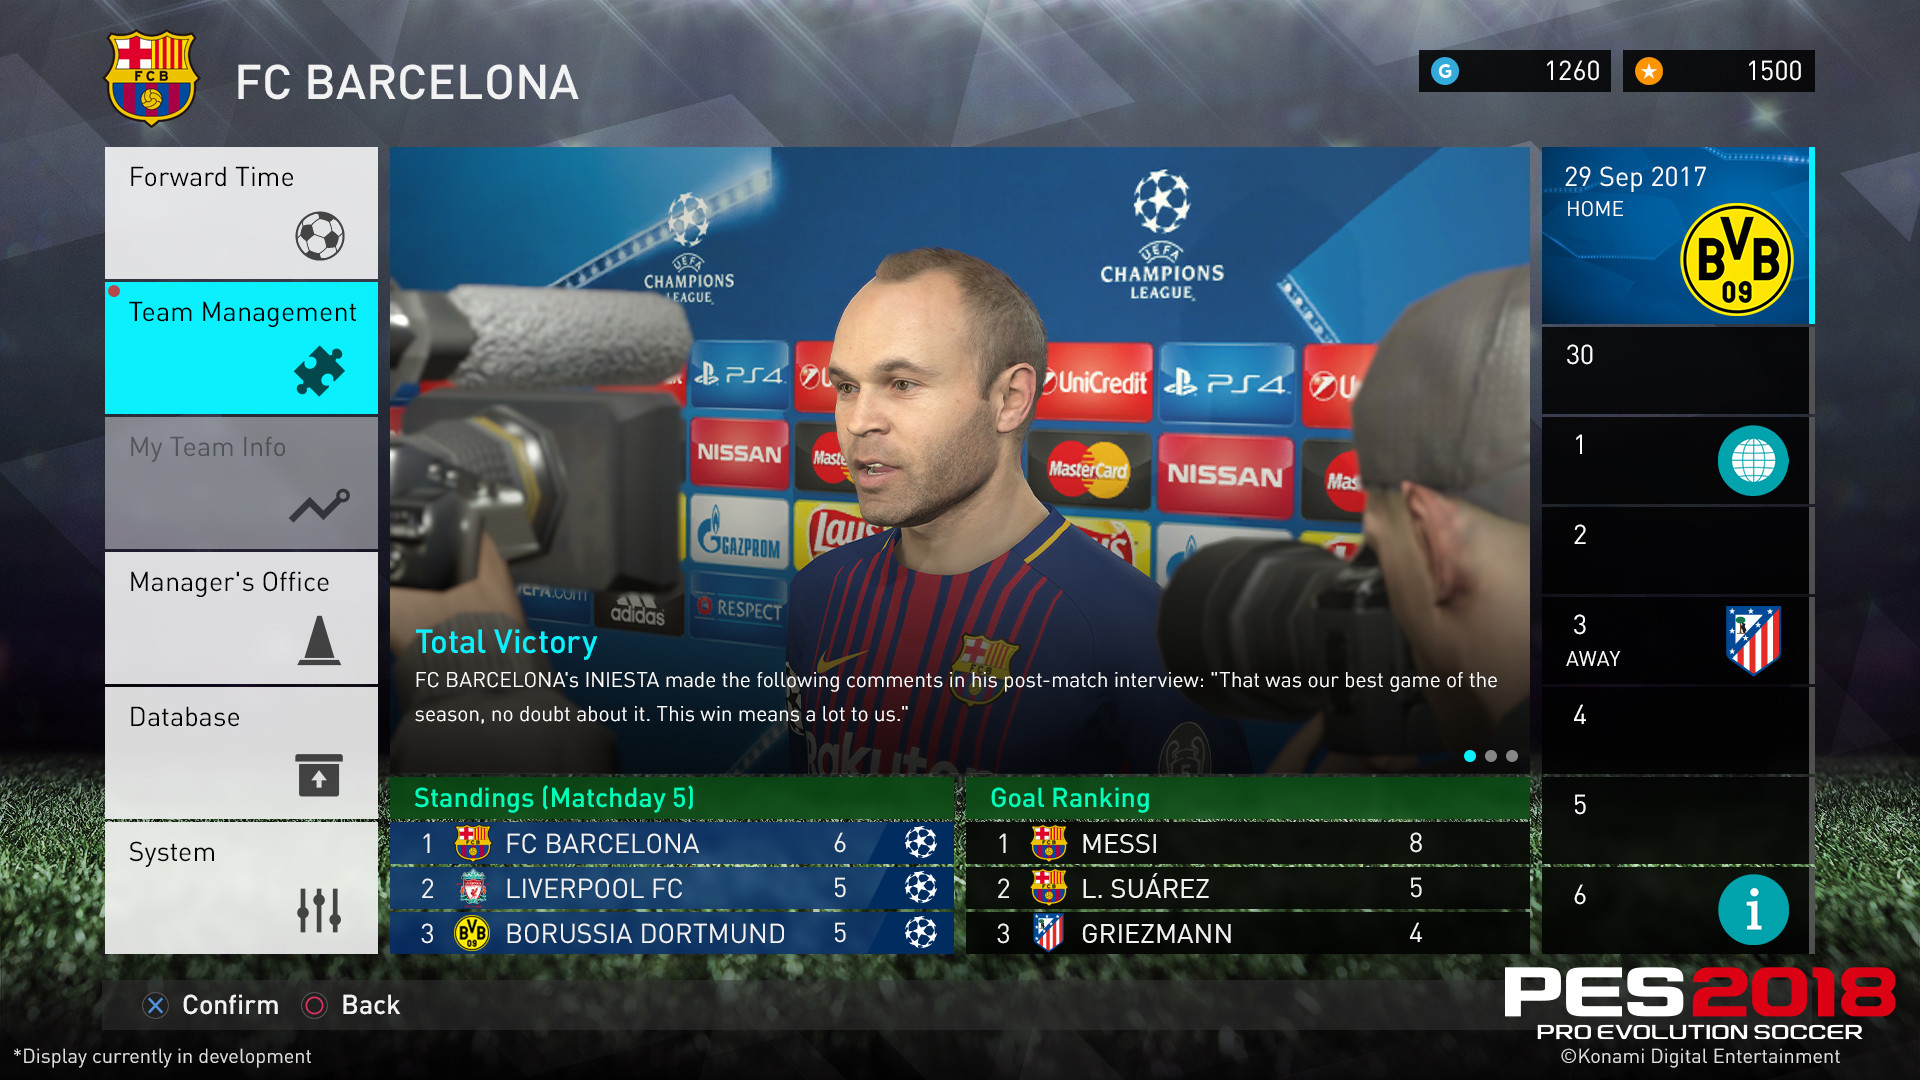 1920x1080 PES 2018 new modes and features